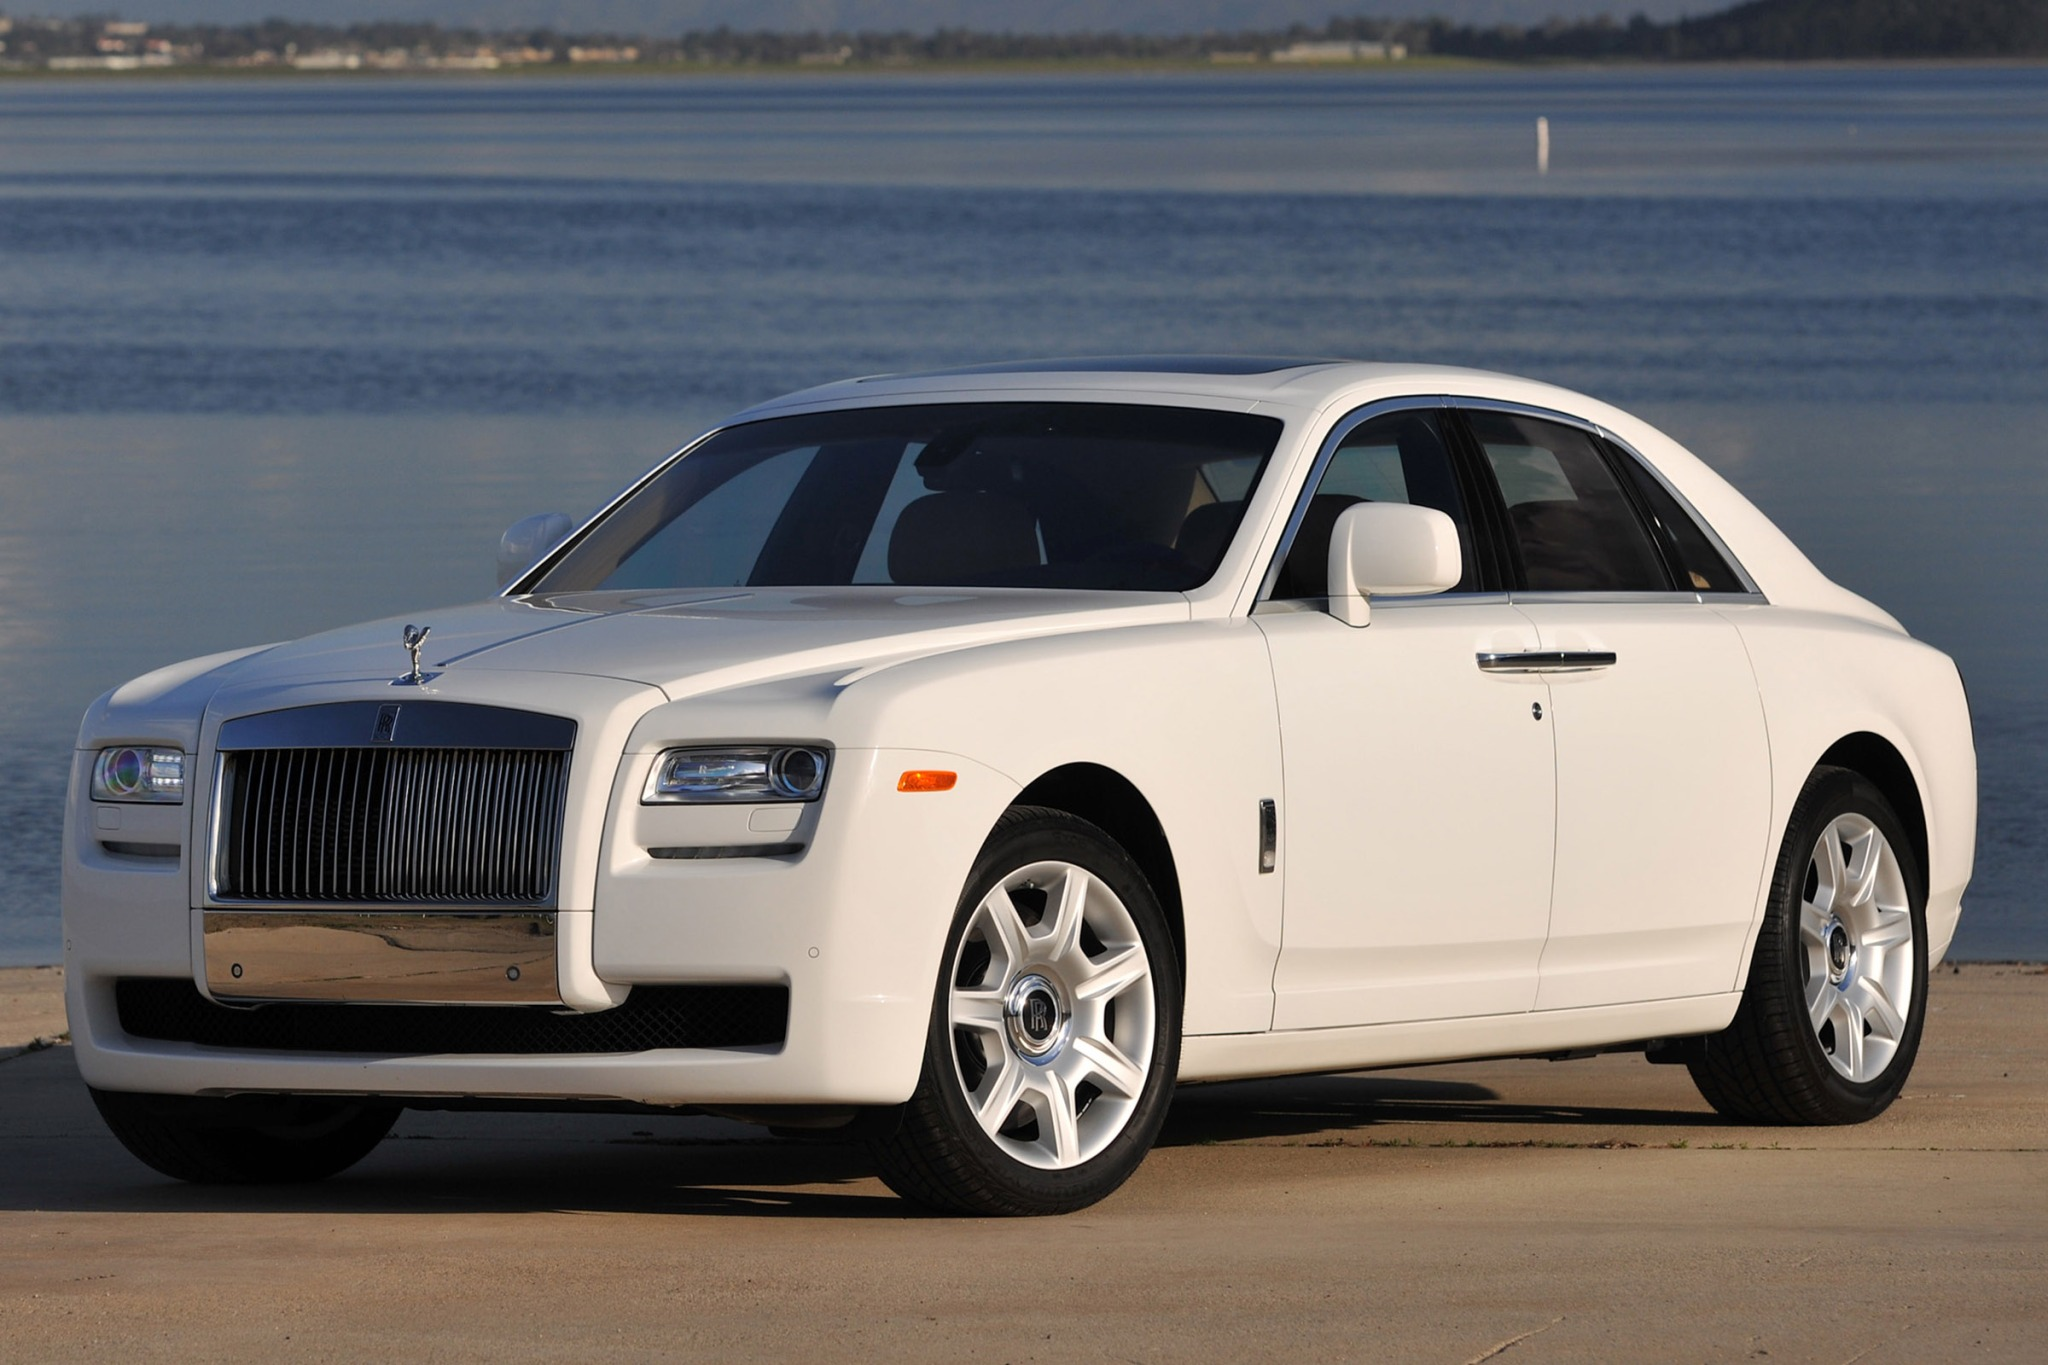 2014 Rolls-Royce Ghost VIN Number Search